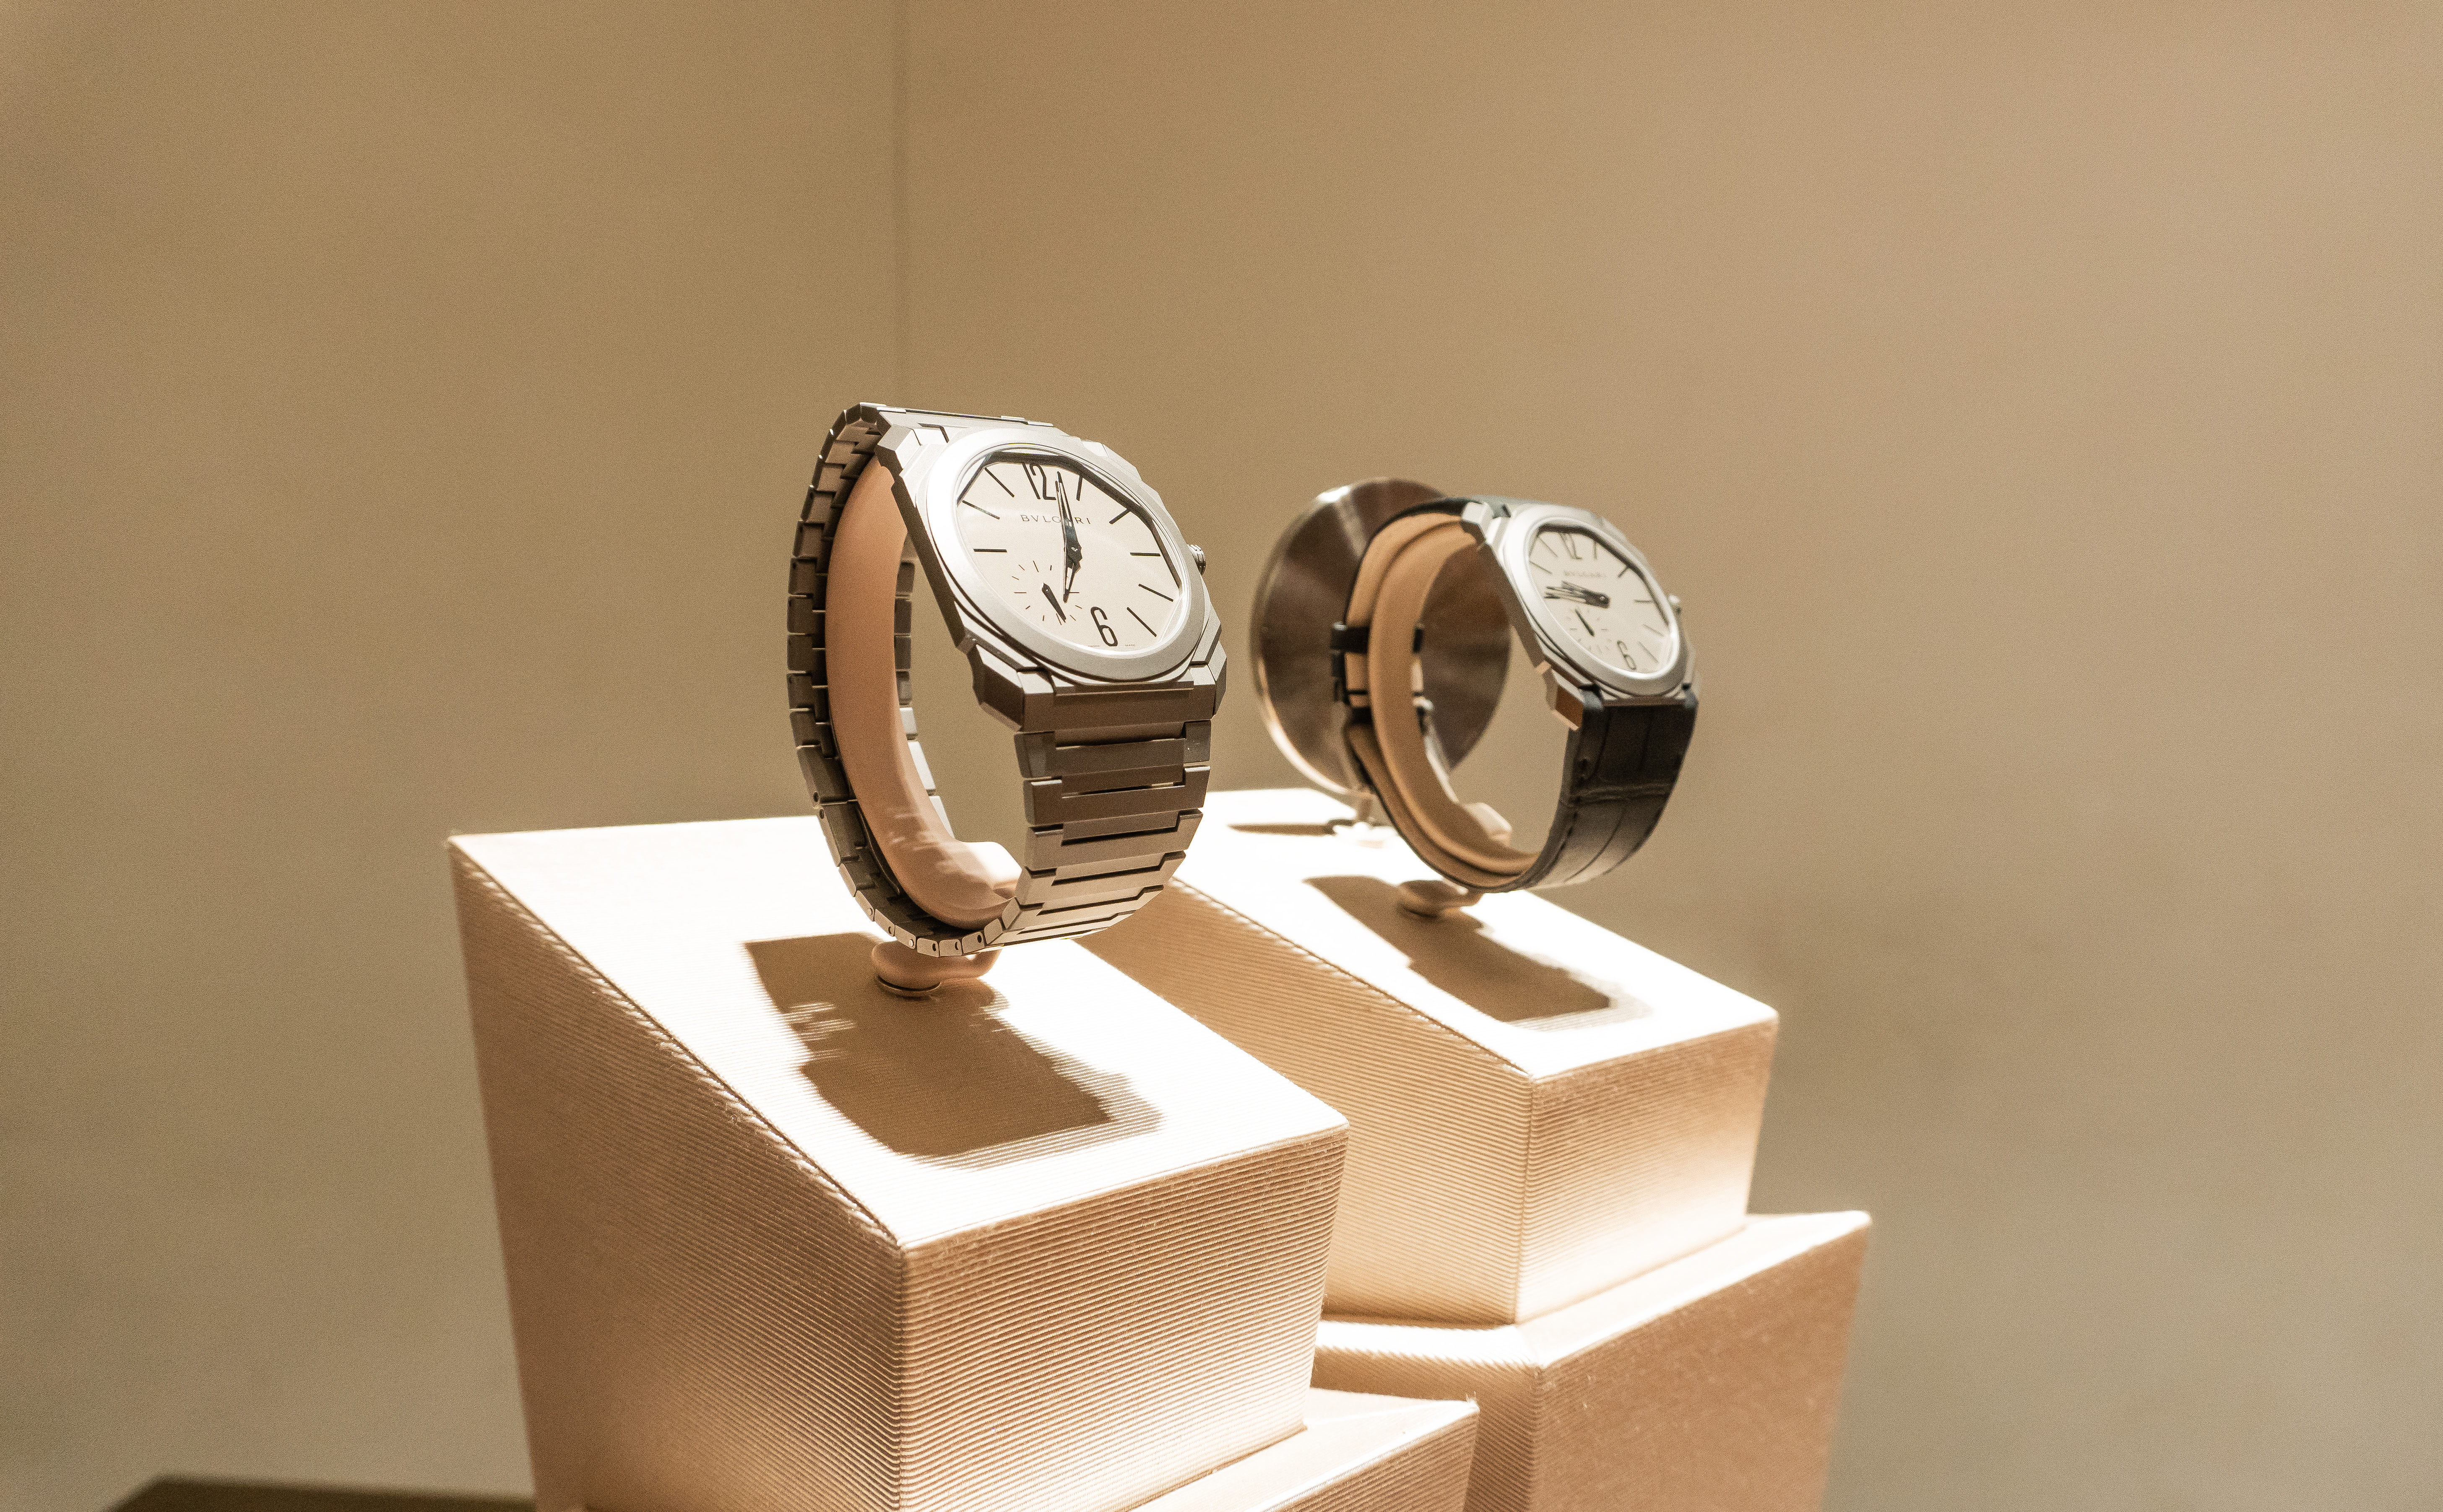 B5 3 - Here's to the world's slimmest automatic watch by Bulgari